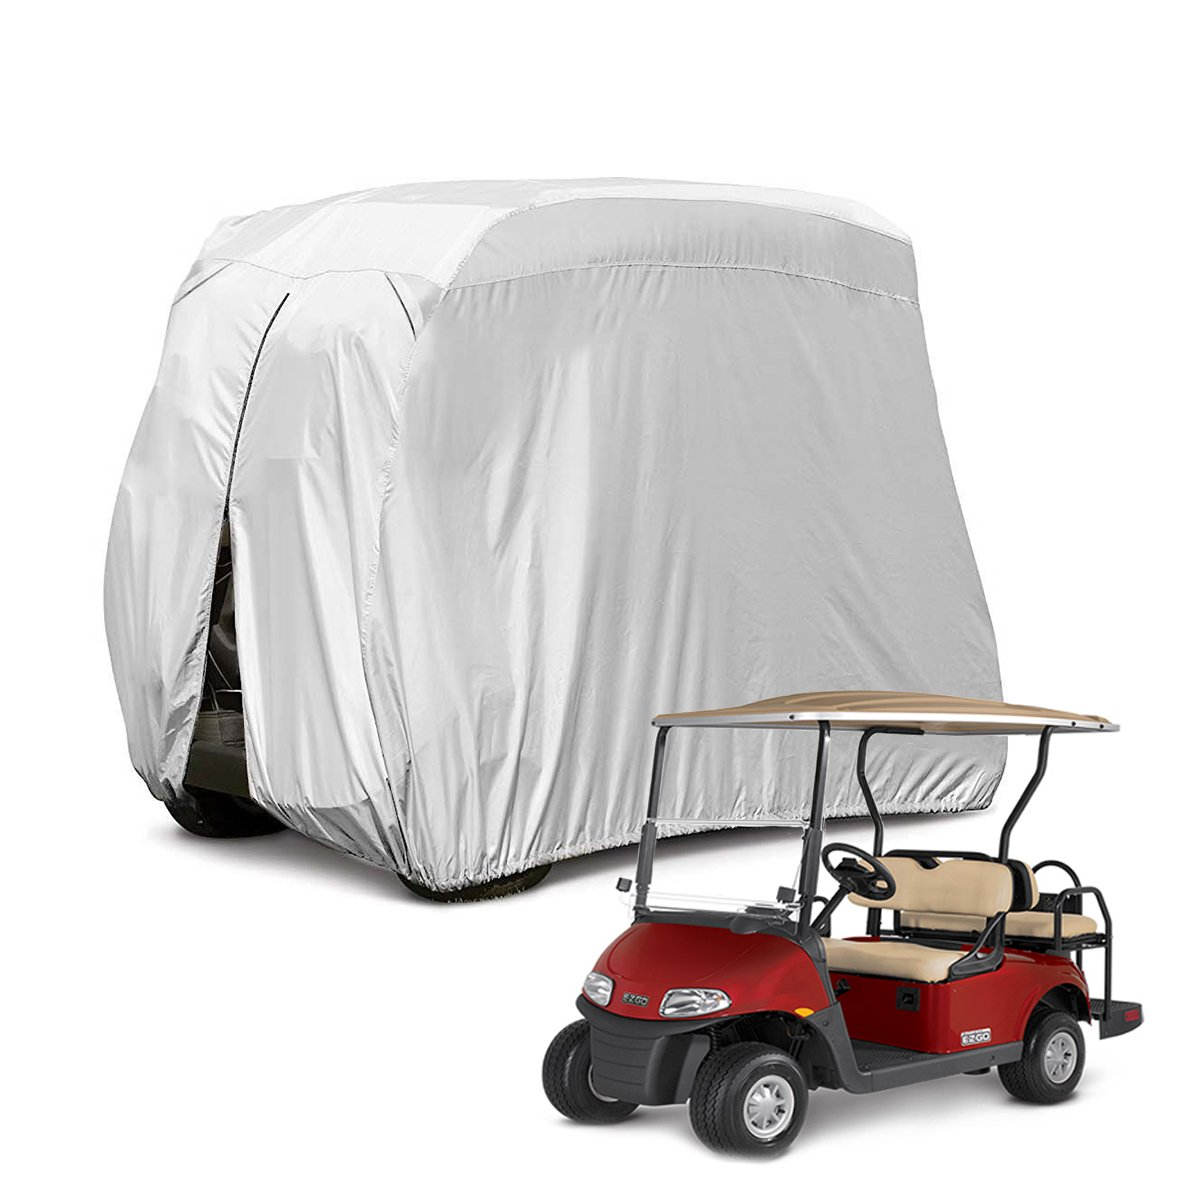 Himal 4 Passenger 400D Waterproof Sunproof Golf cart Cover roof 80'' L, fits EZ GO, Club car and Yamaha, dustproof and Durable by Himal